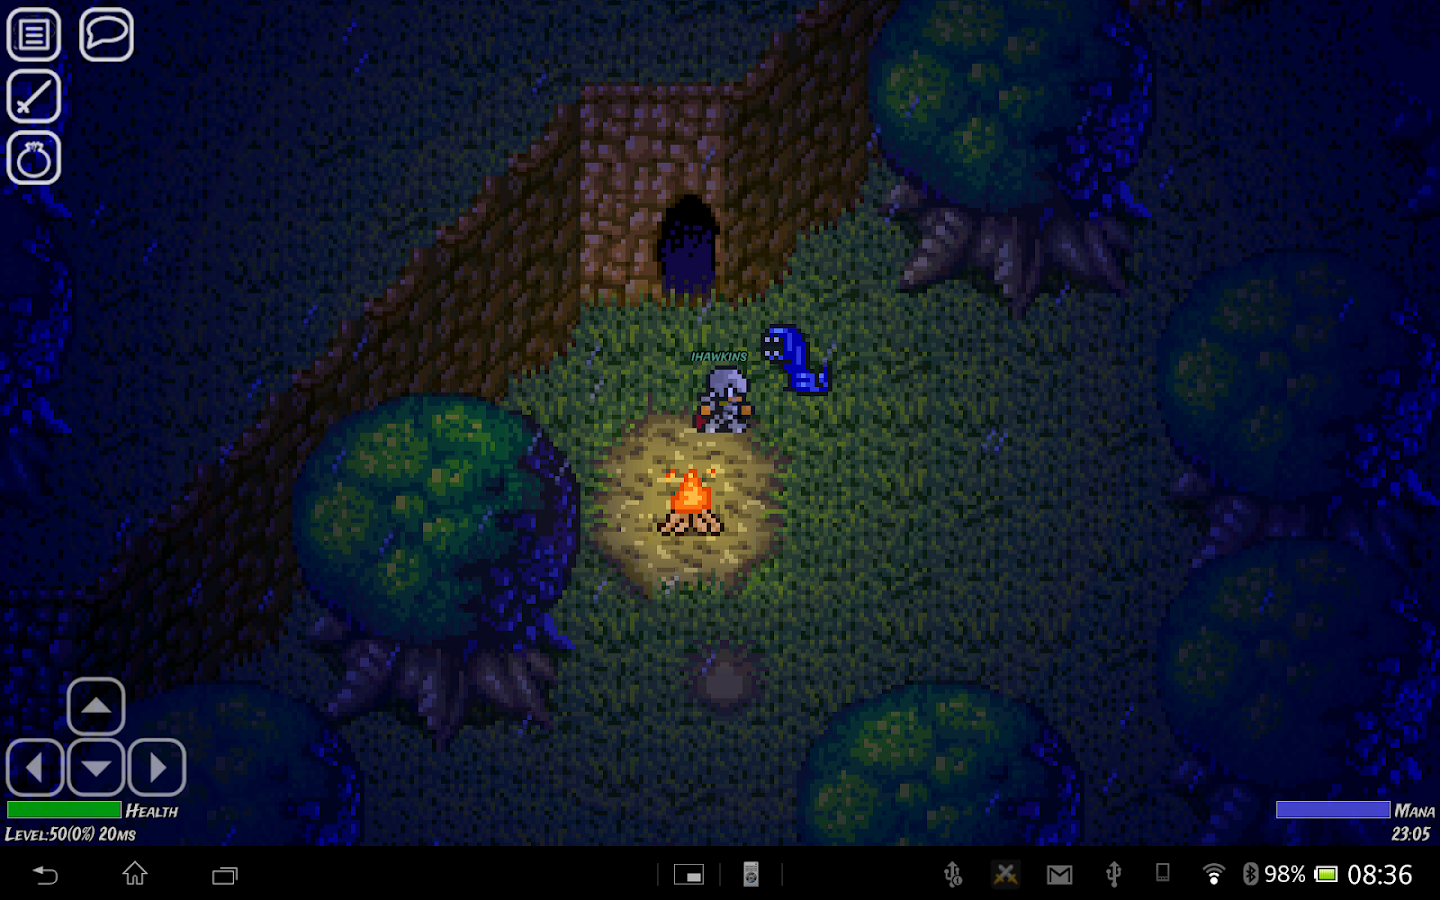 WinterSun MMORPG (Retro 2D) - screenshot